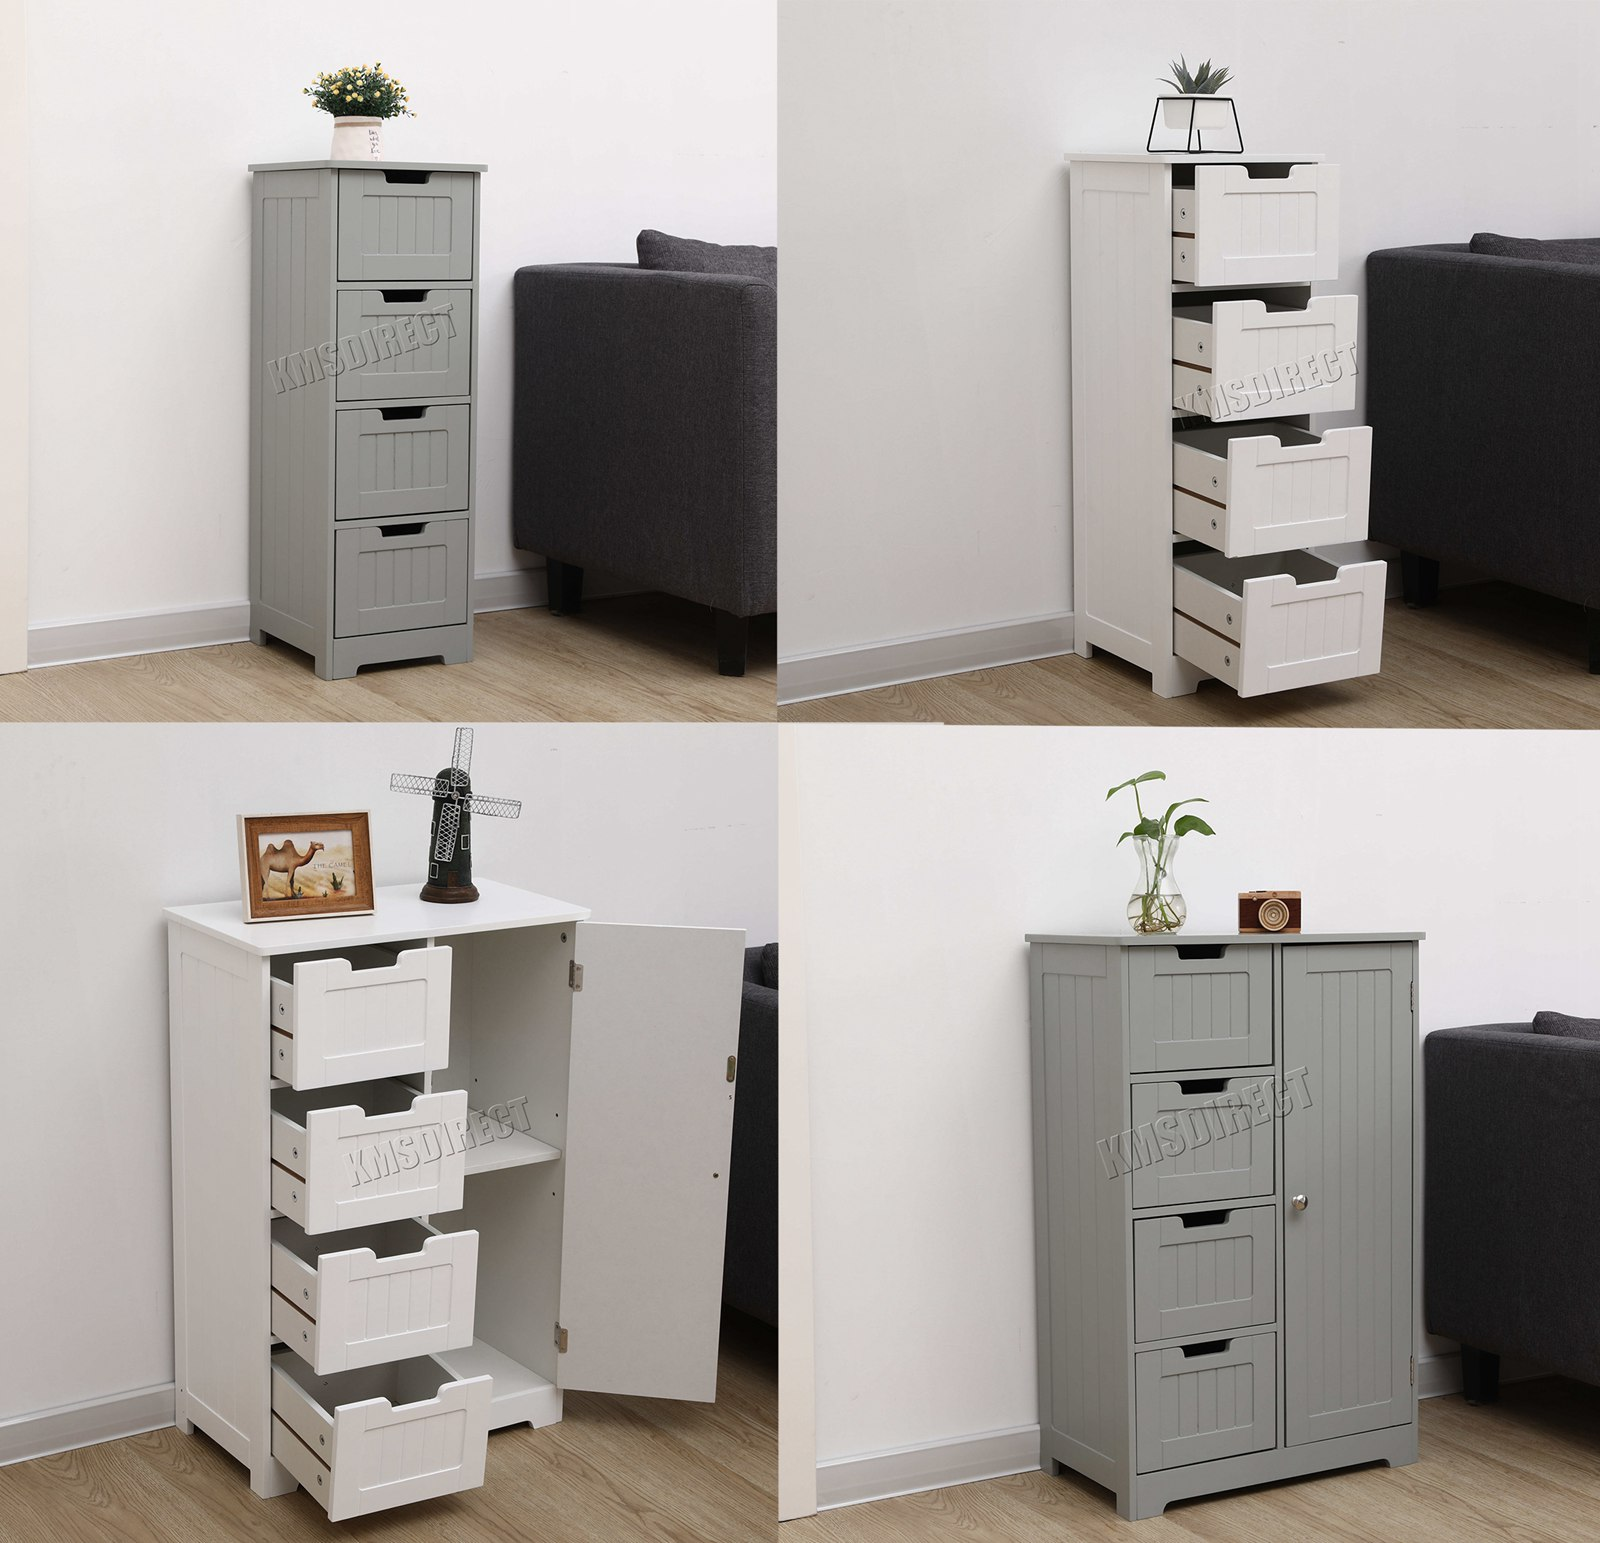 Westwood Bathroom Storage Cabinet